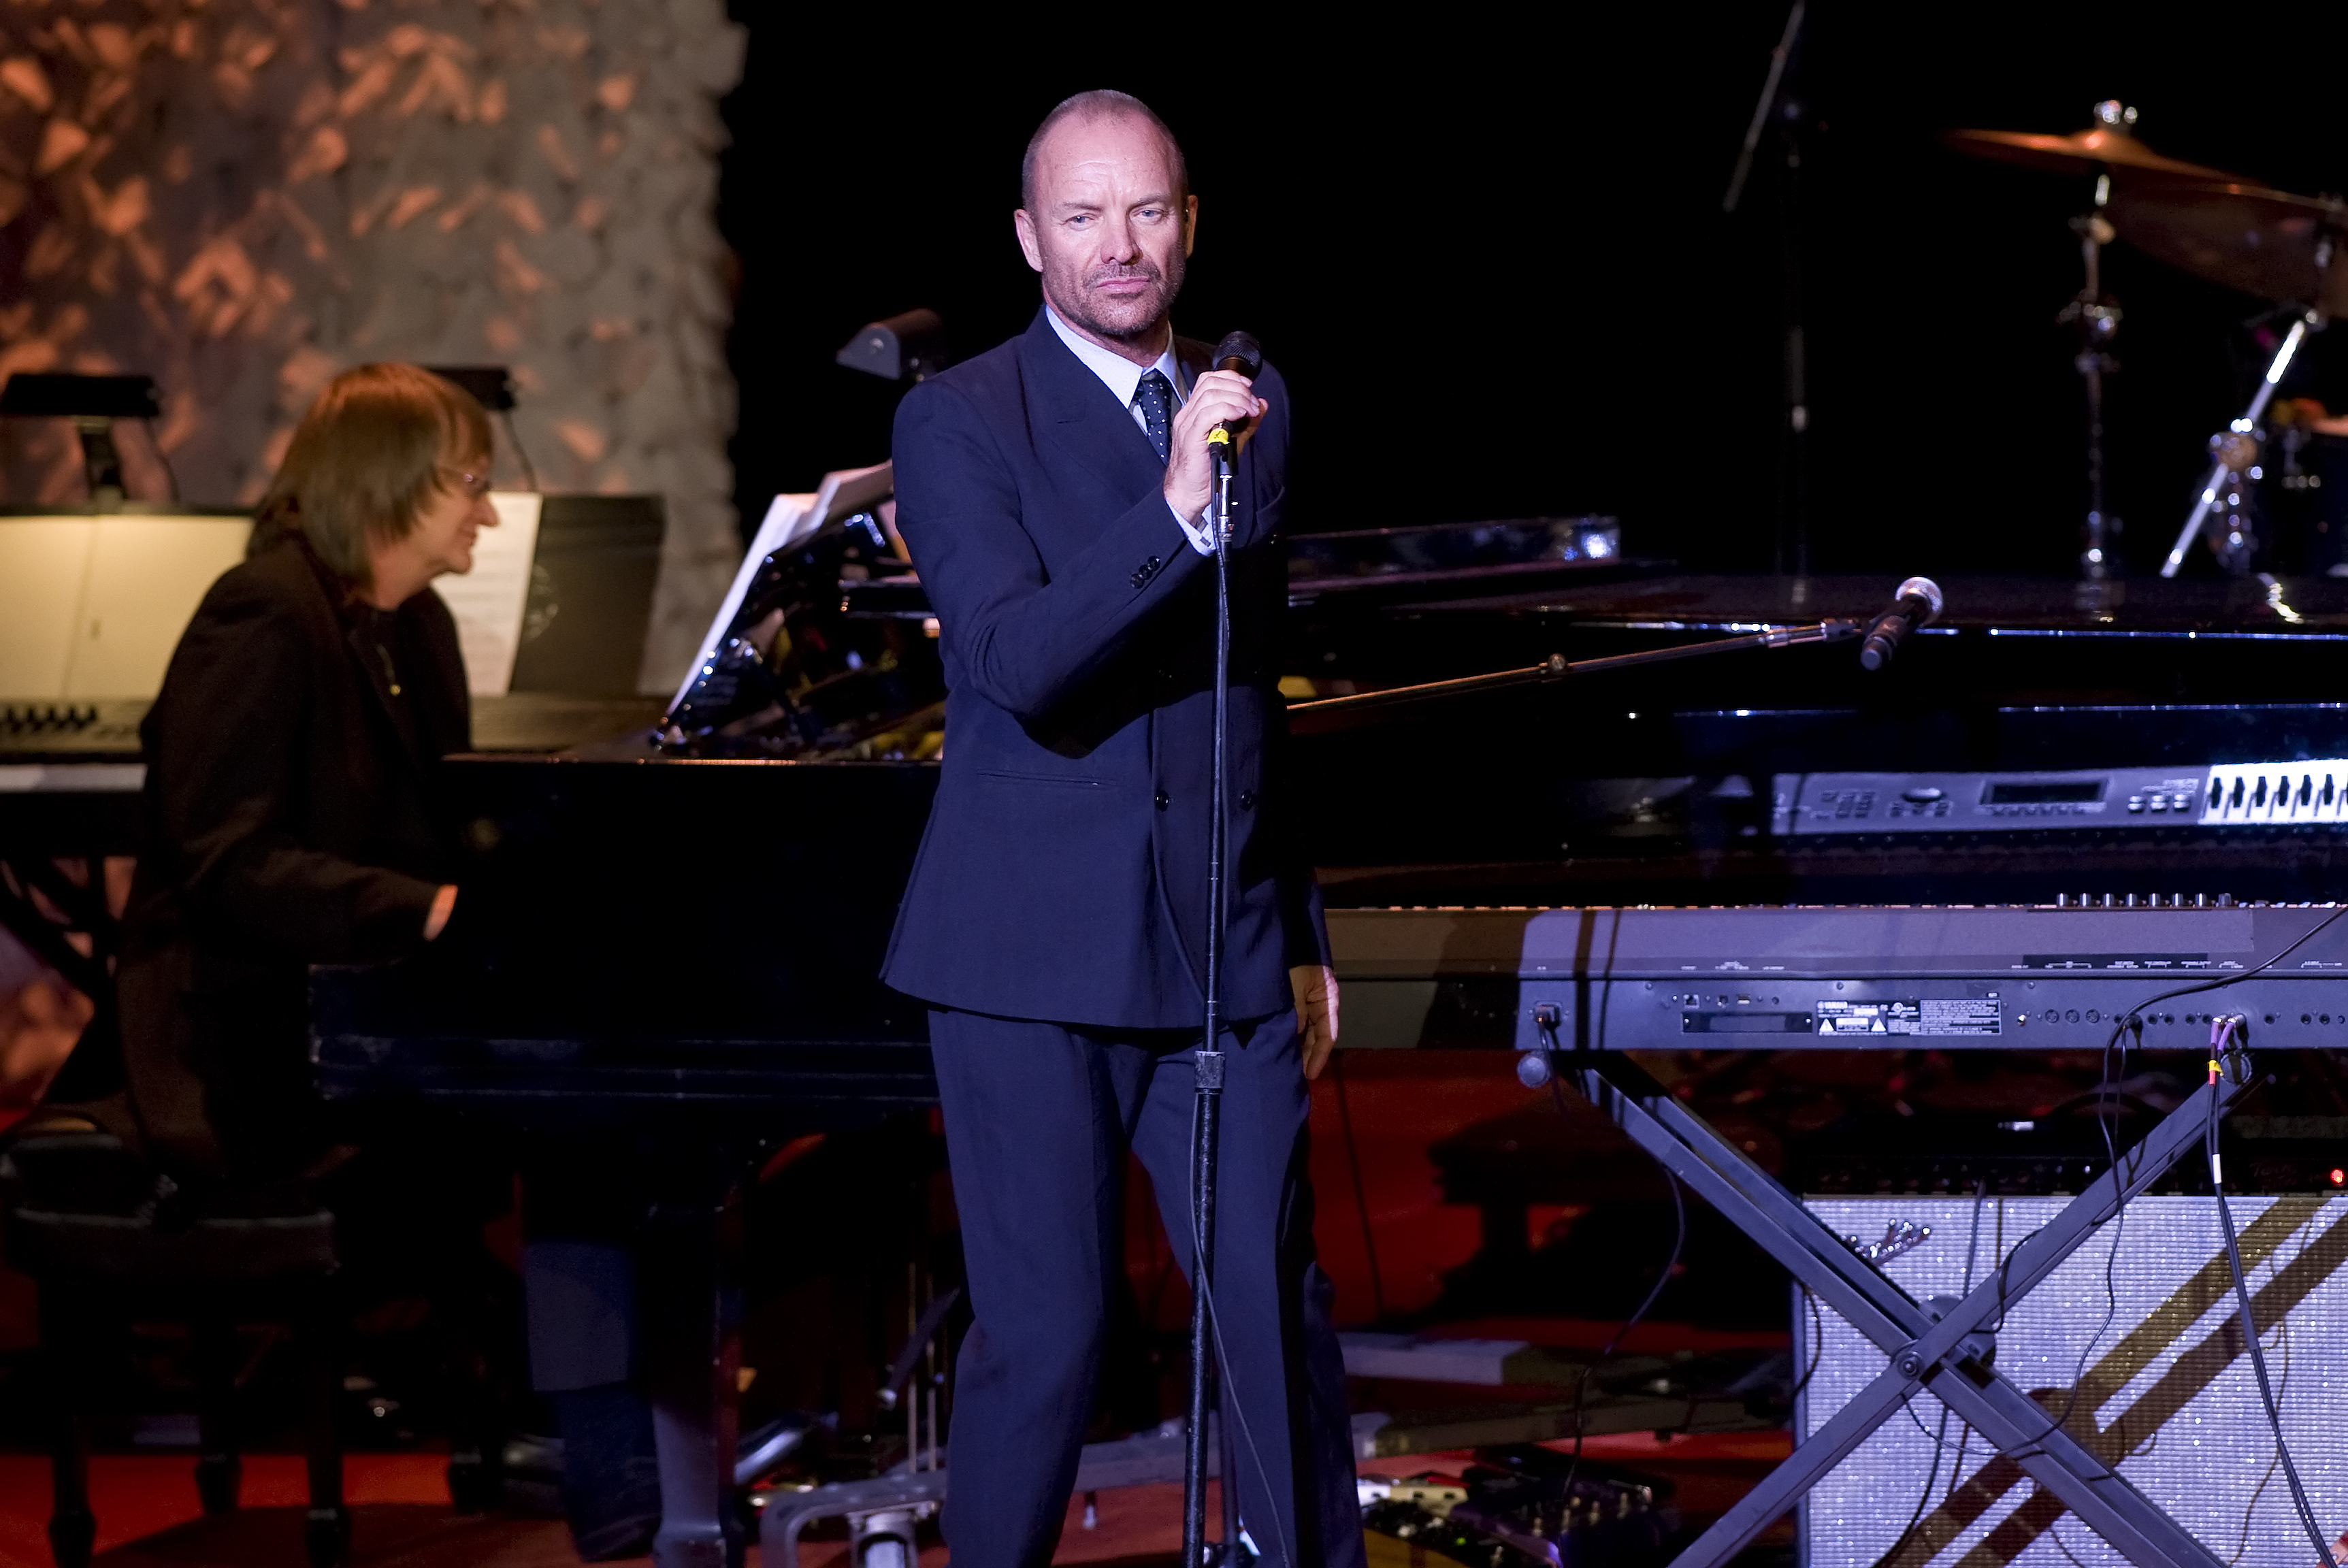 Sting performs at the 2014 ASCAP Centennial Awards, benefiting the ASCAP Foundation and its music education, talent development and humanitarian activities, at the Waldorf-Astoria on Monday, Nov. 17, 2014, in New York.